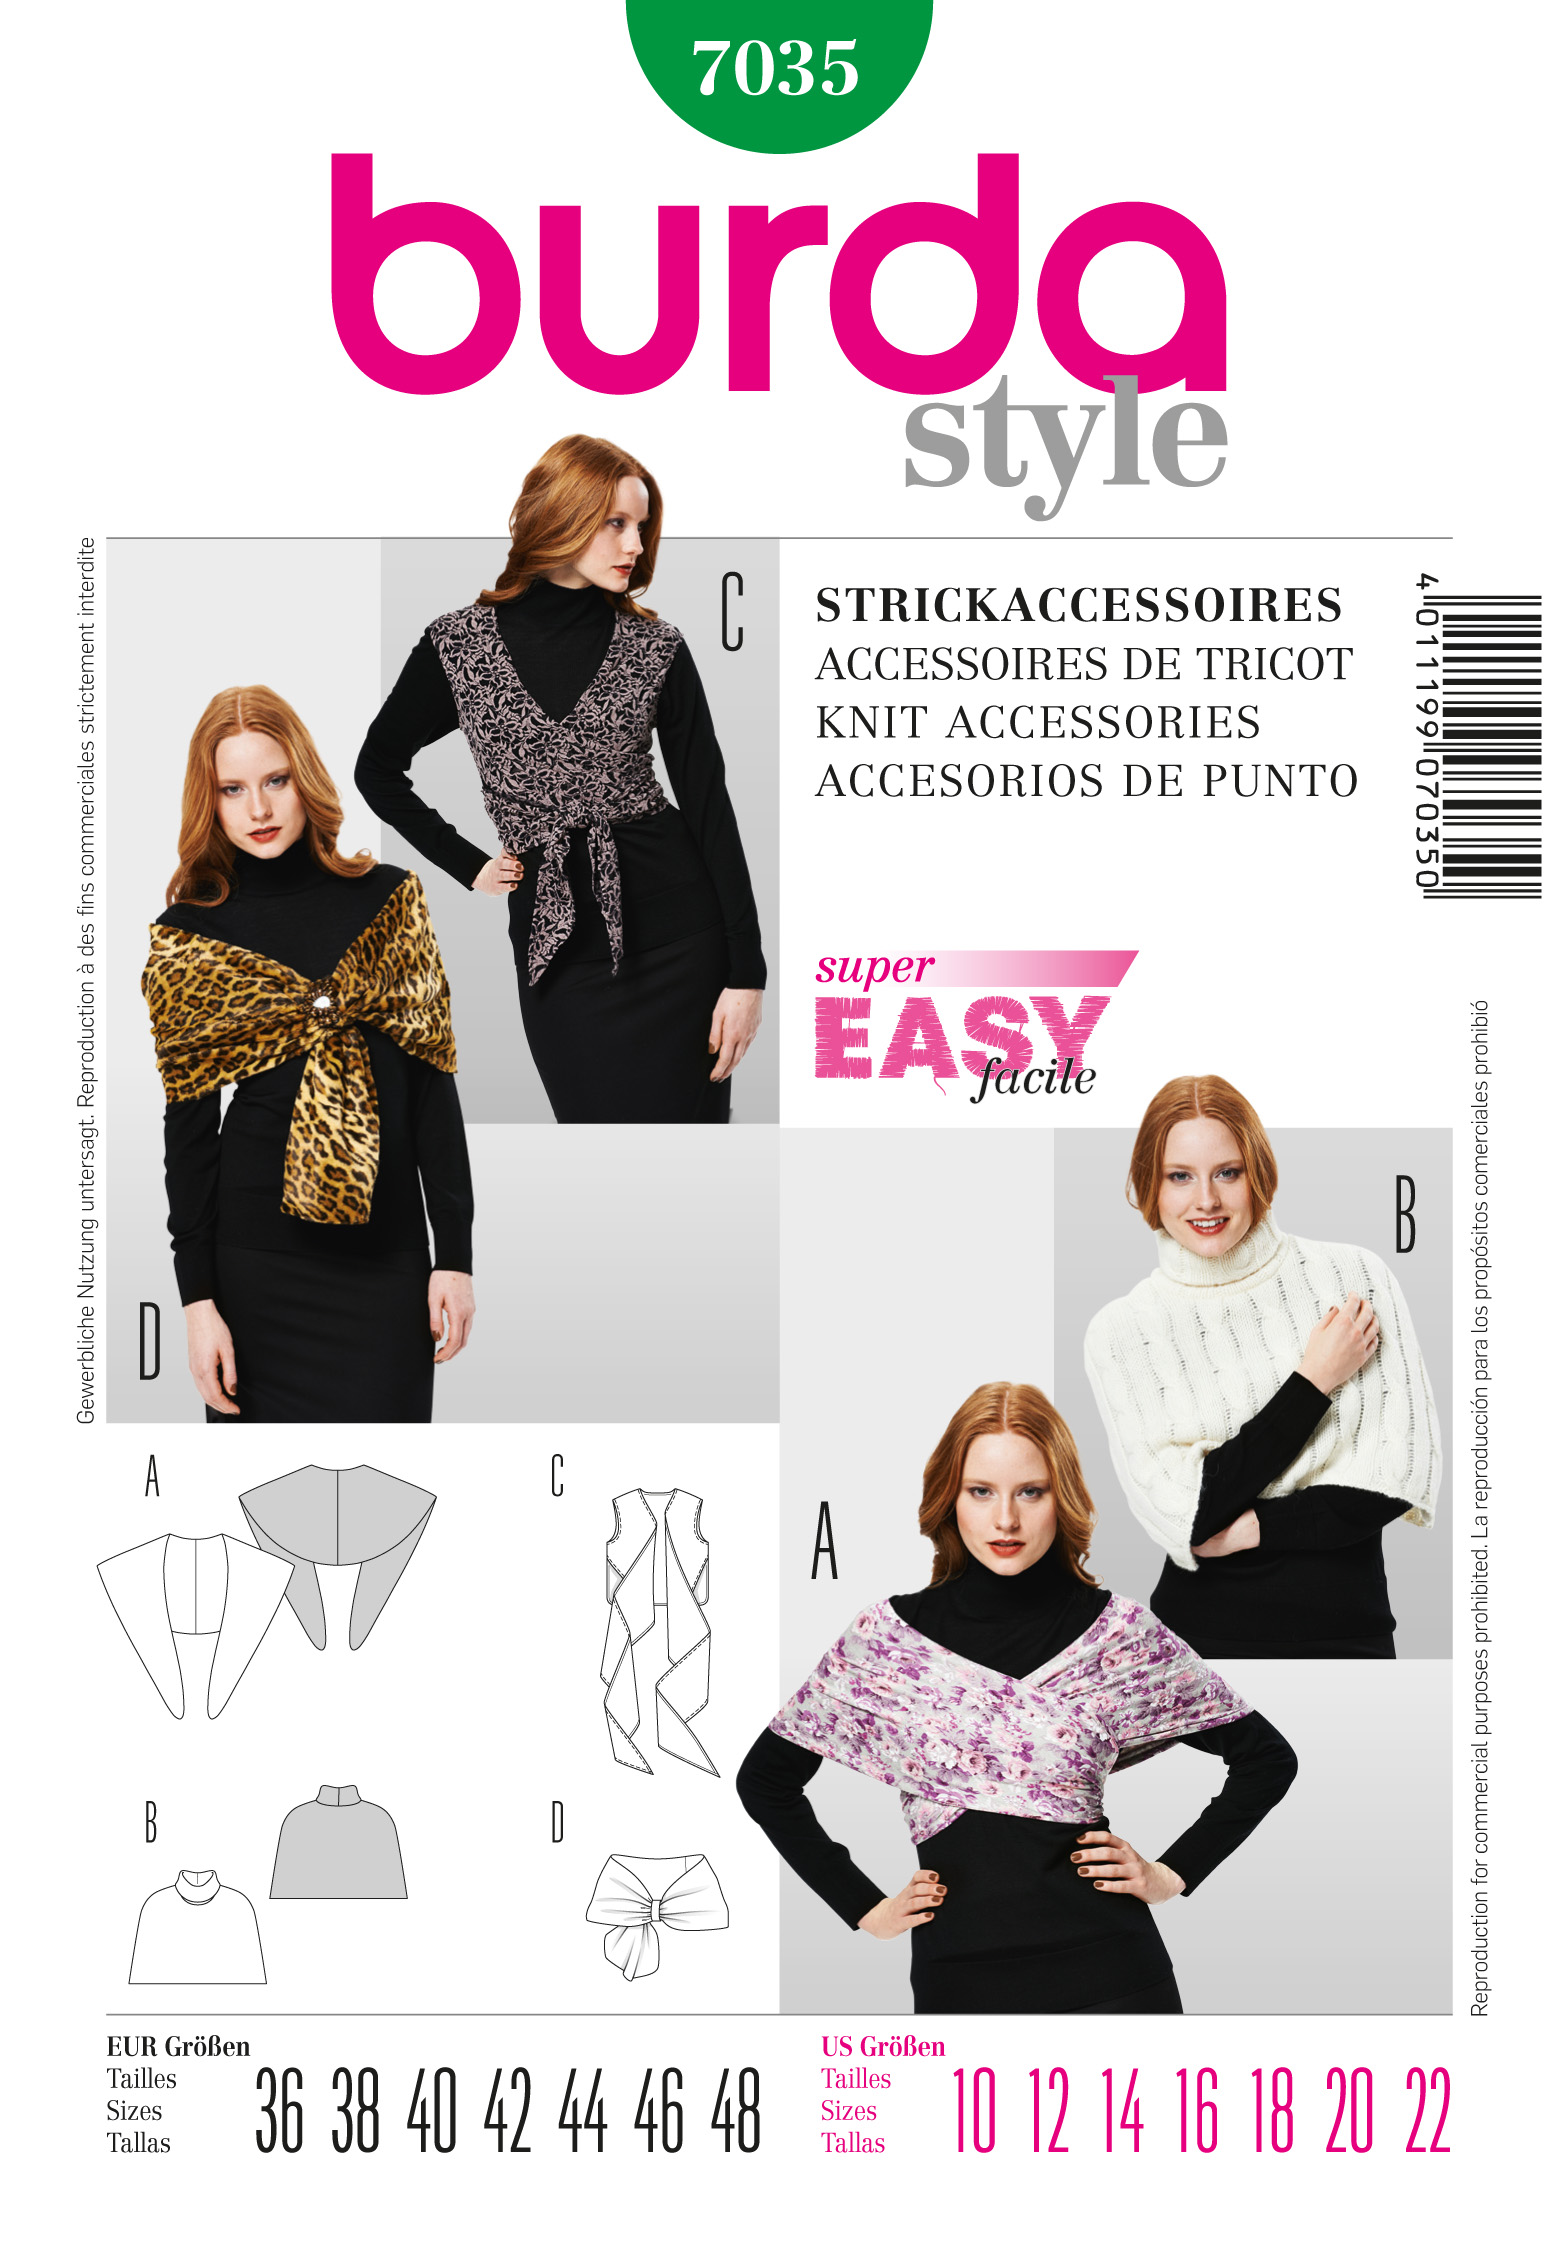 Burda Knit Accessories  7035